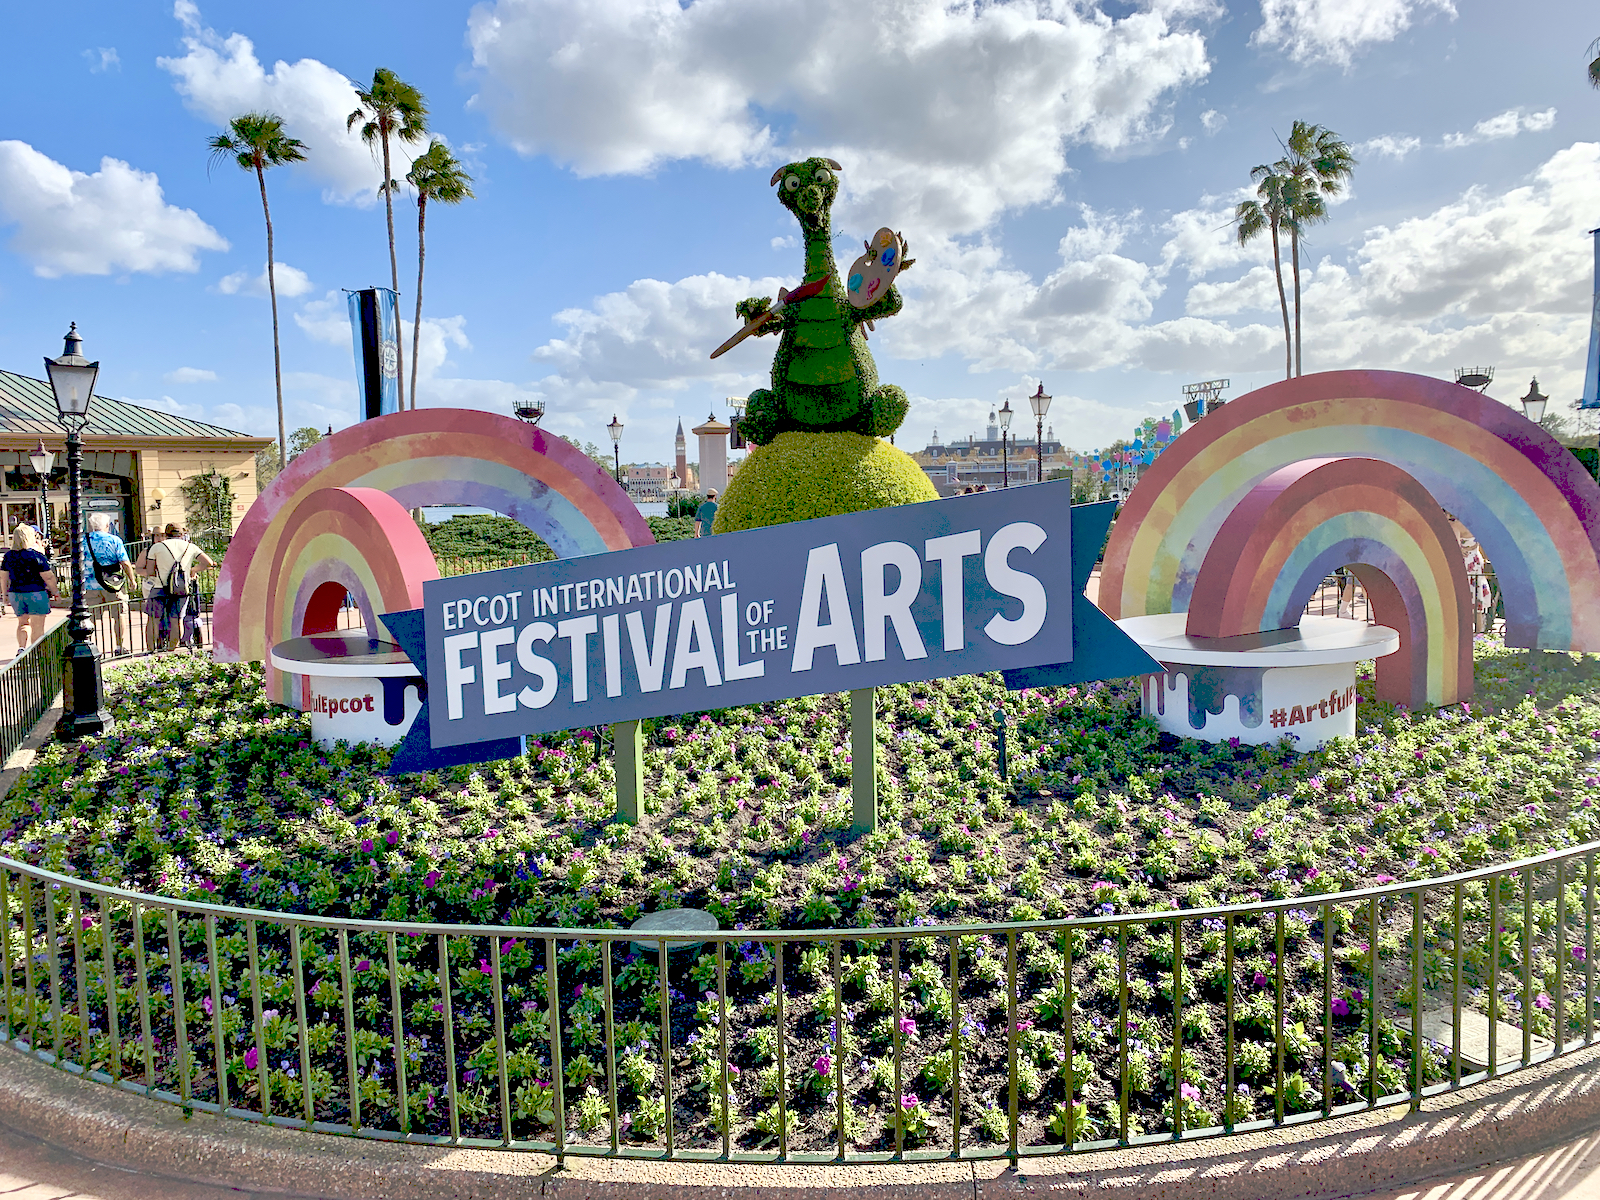 Disney Epcot Festival Arts 2018 Pack Guidemaps Passports Gift Card Figment 2 Other Contemporary Disney Collectables